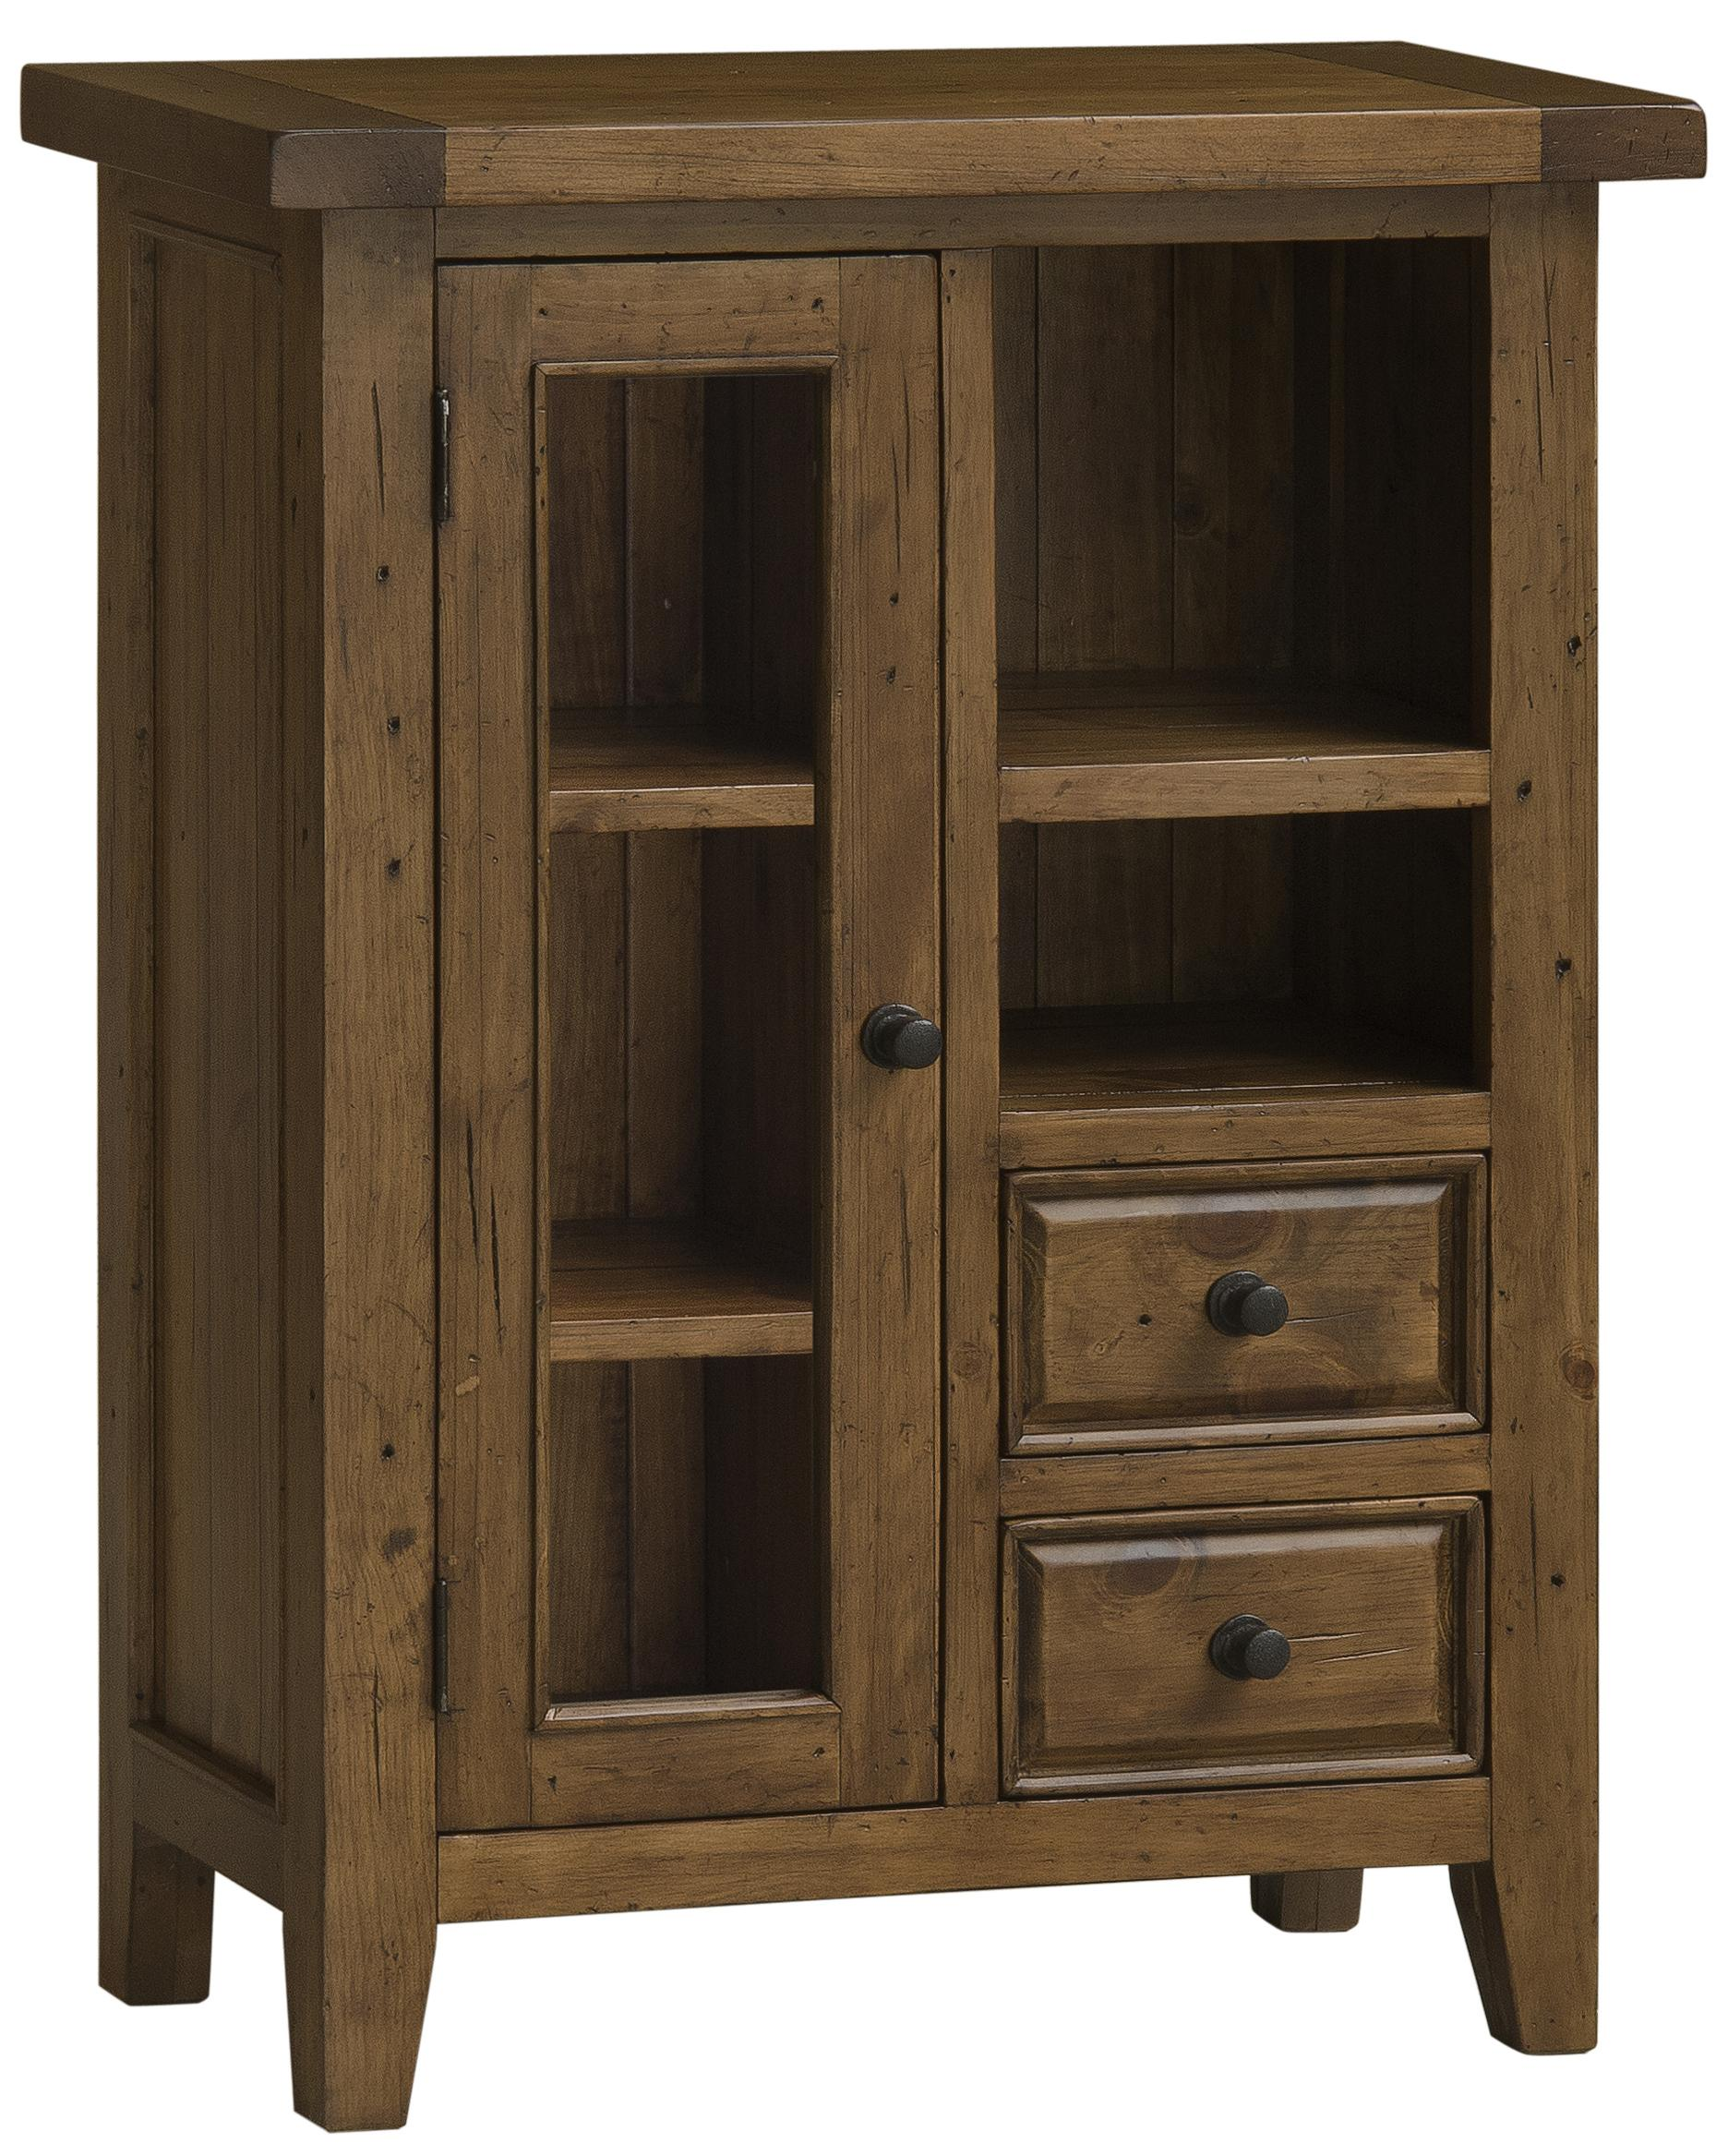 Hillsdale Tuscan Retreat Coffee Cabinet - Item Number: 5225-858W